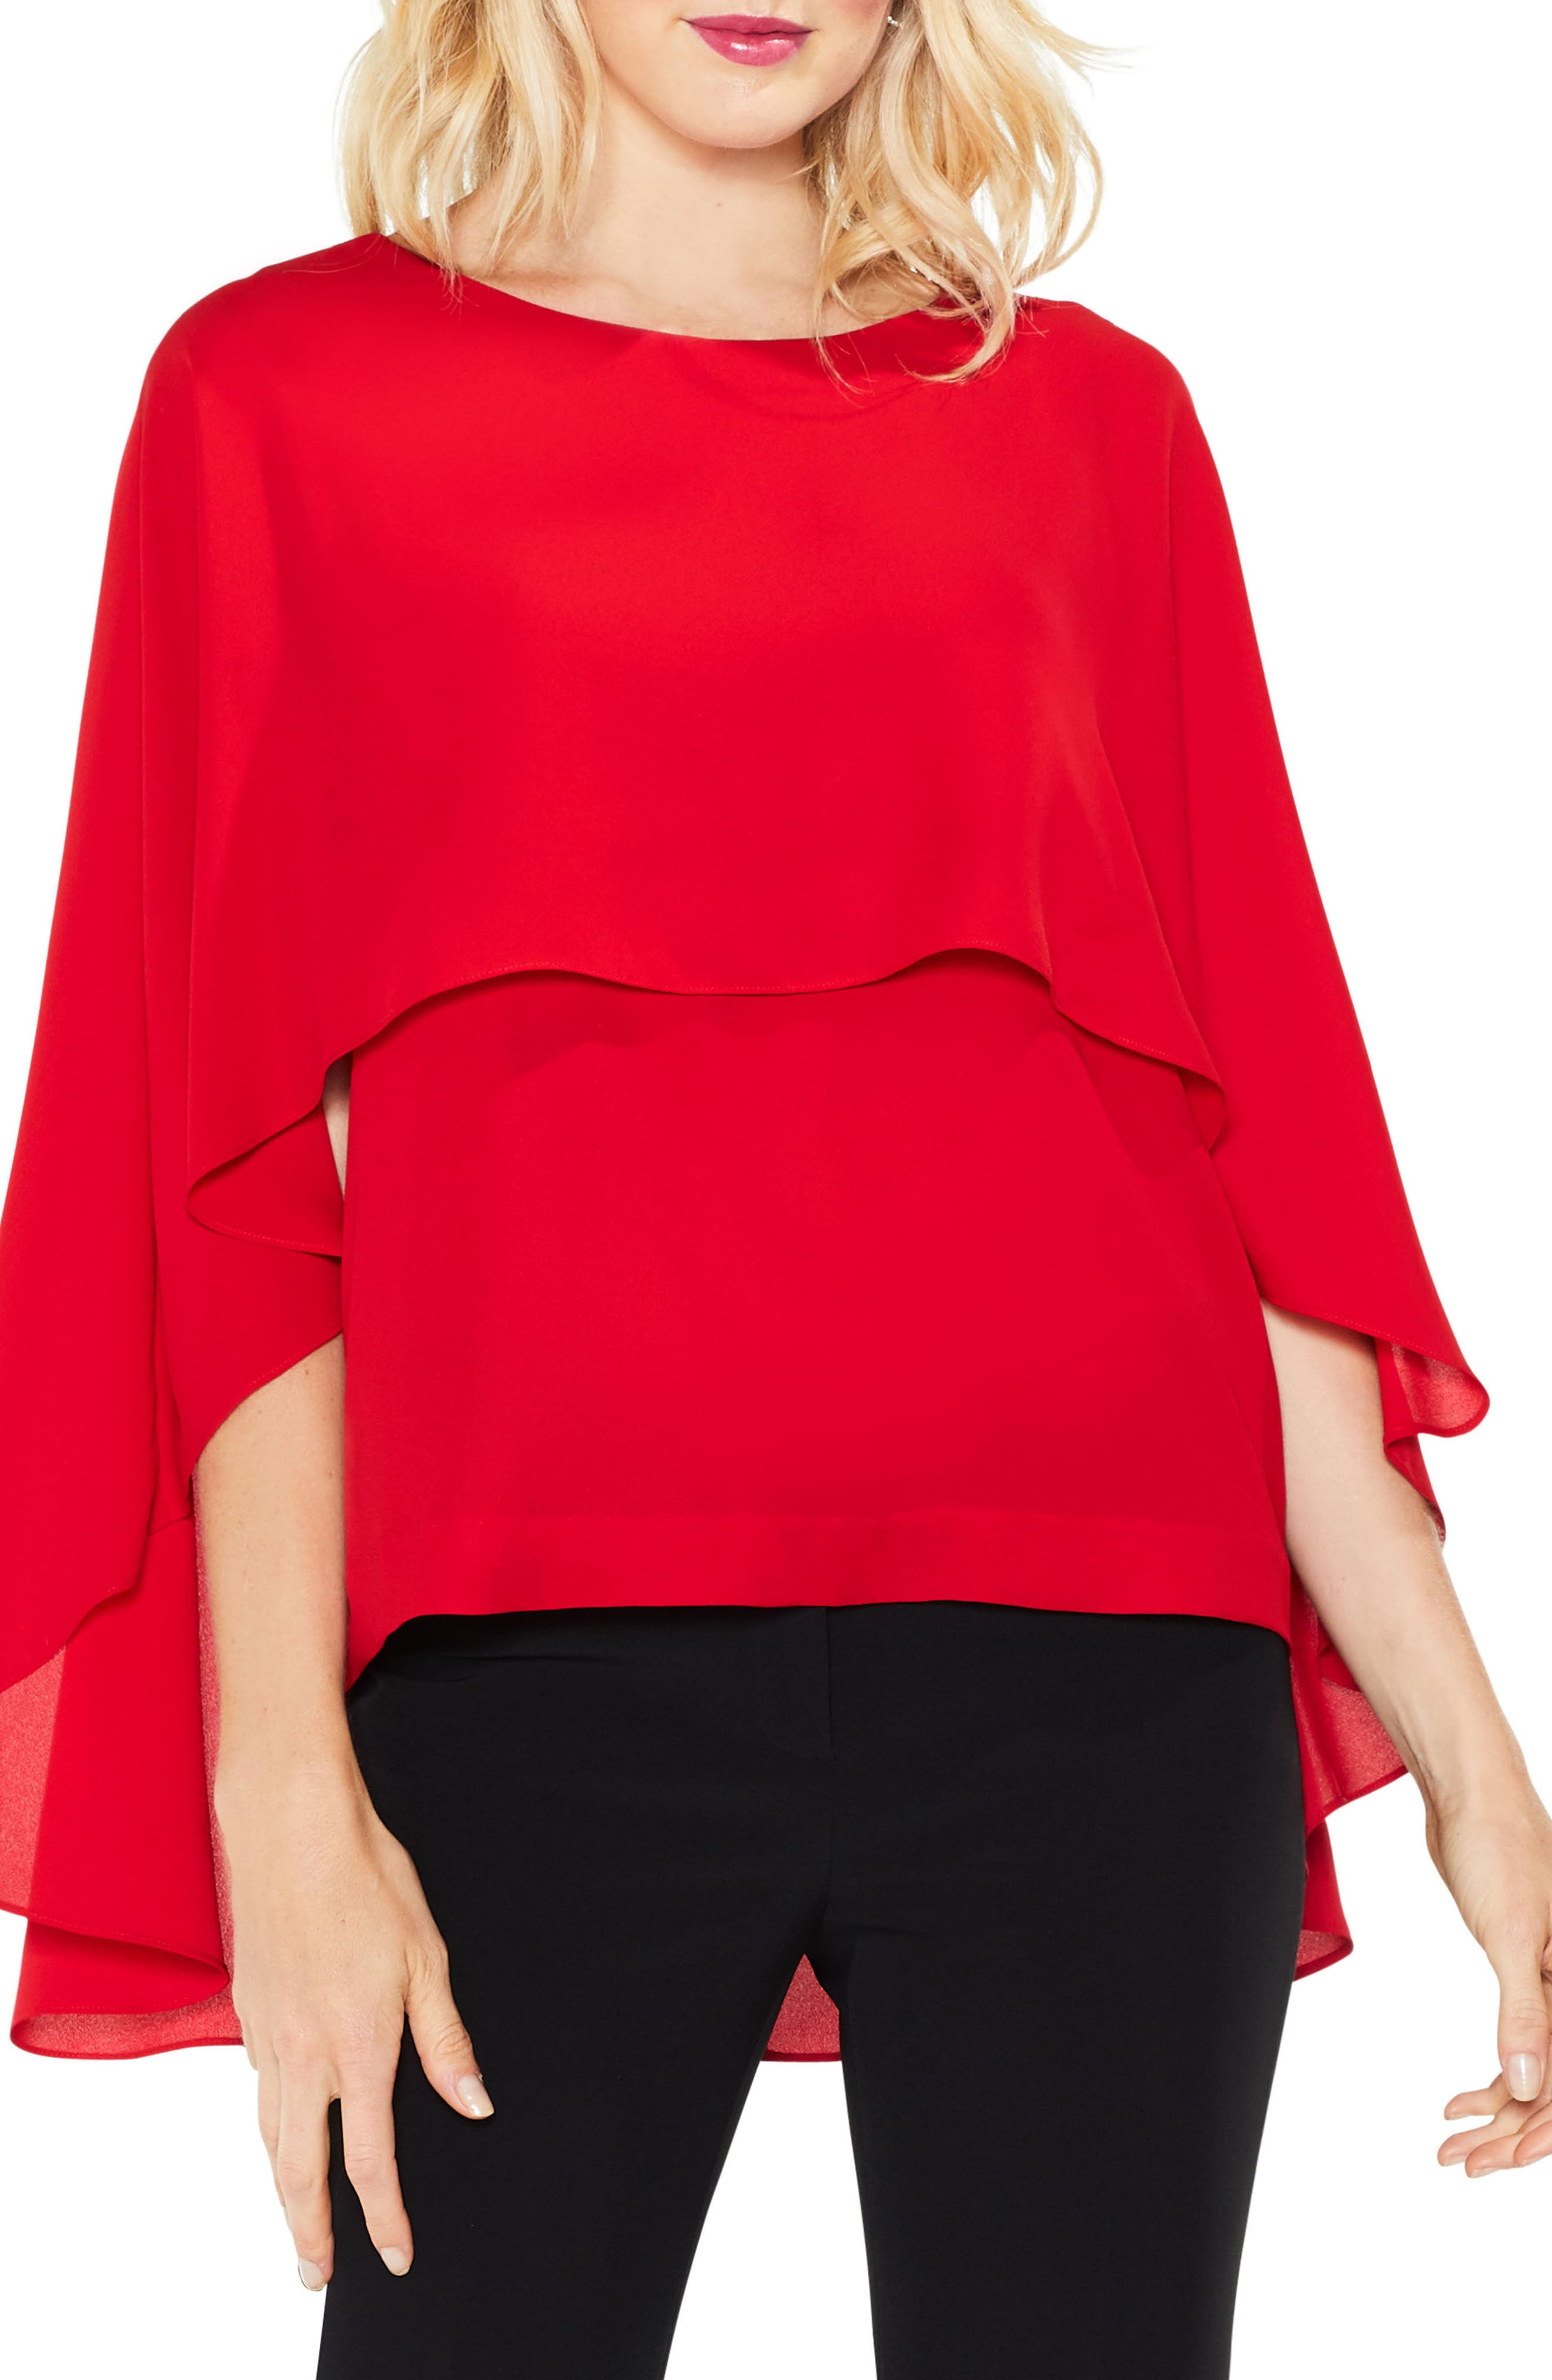 Alternate Image 1 Selected - Vince Camuto Cape Overlay Blouse